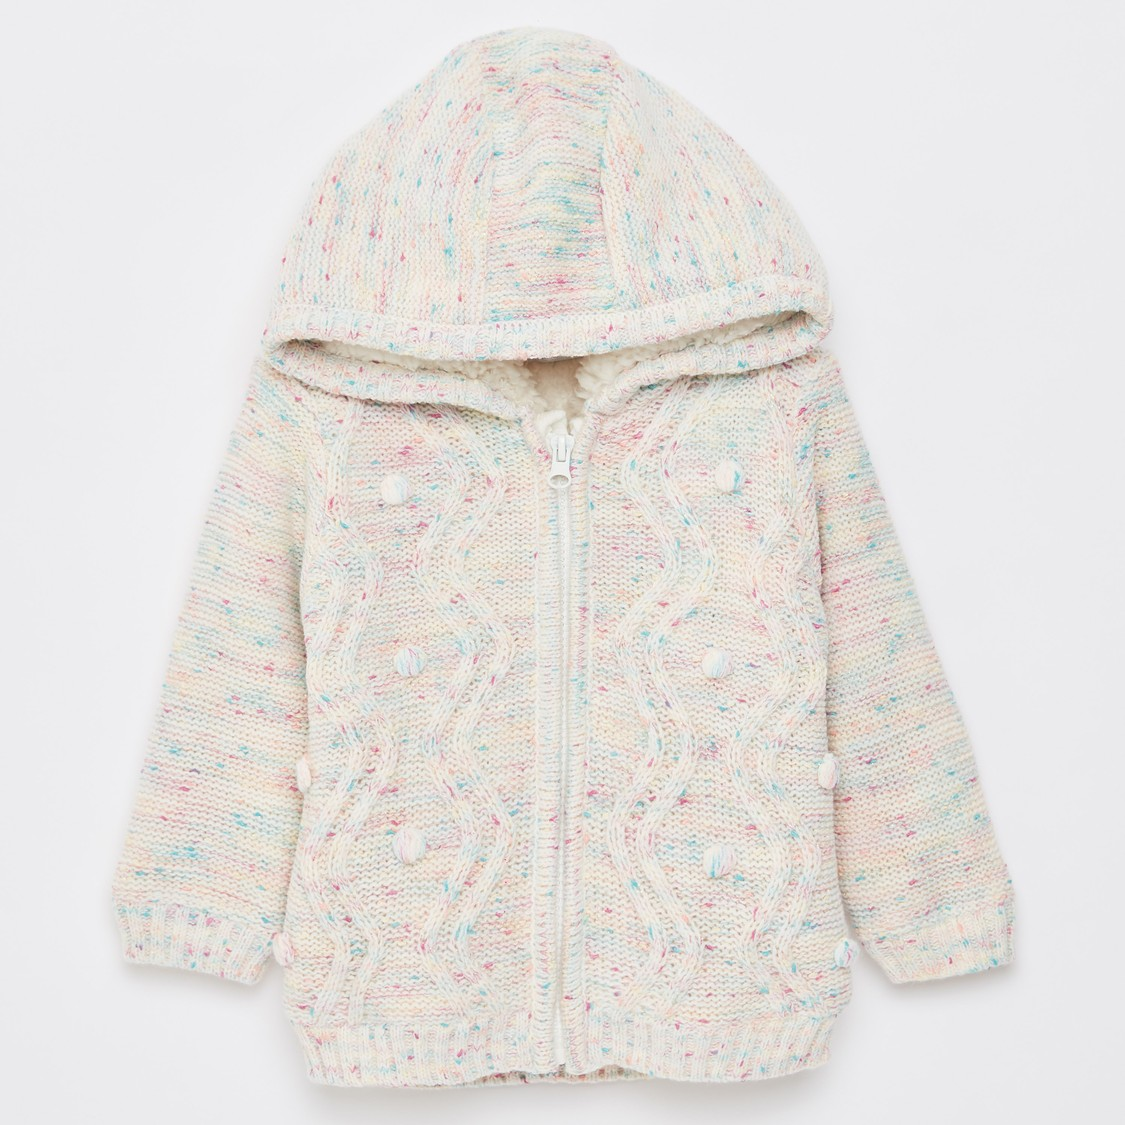 Textured Jacket with Hood and Long Sleeves